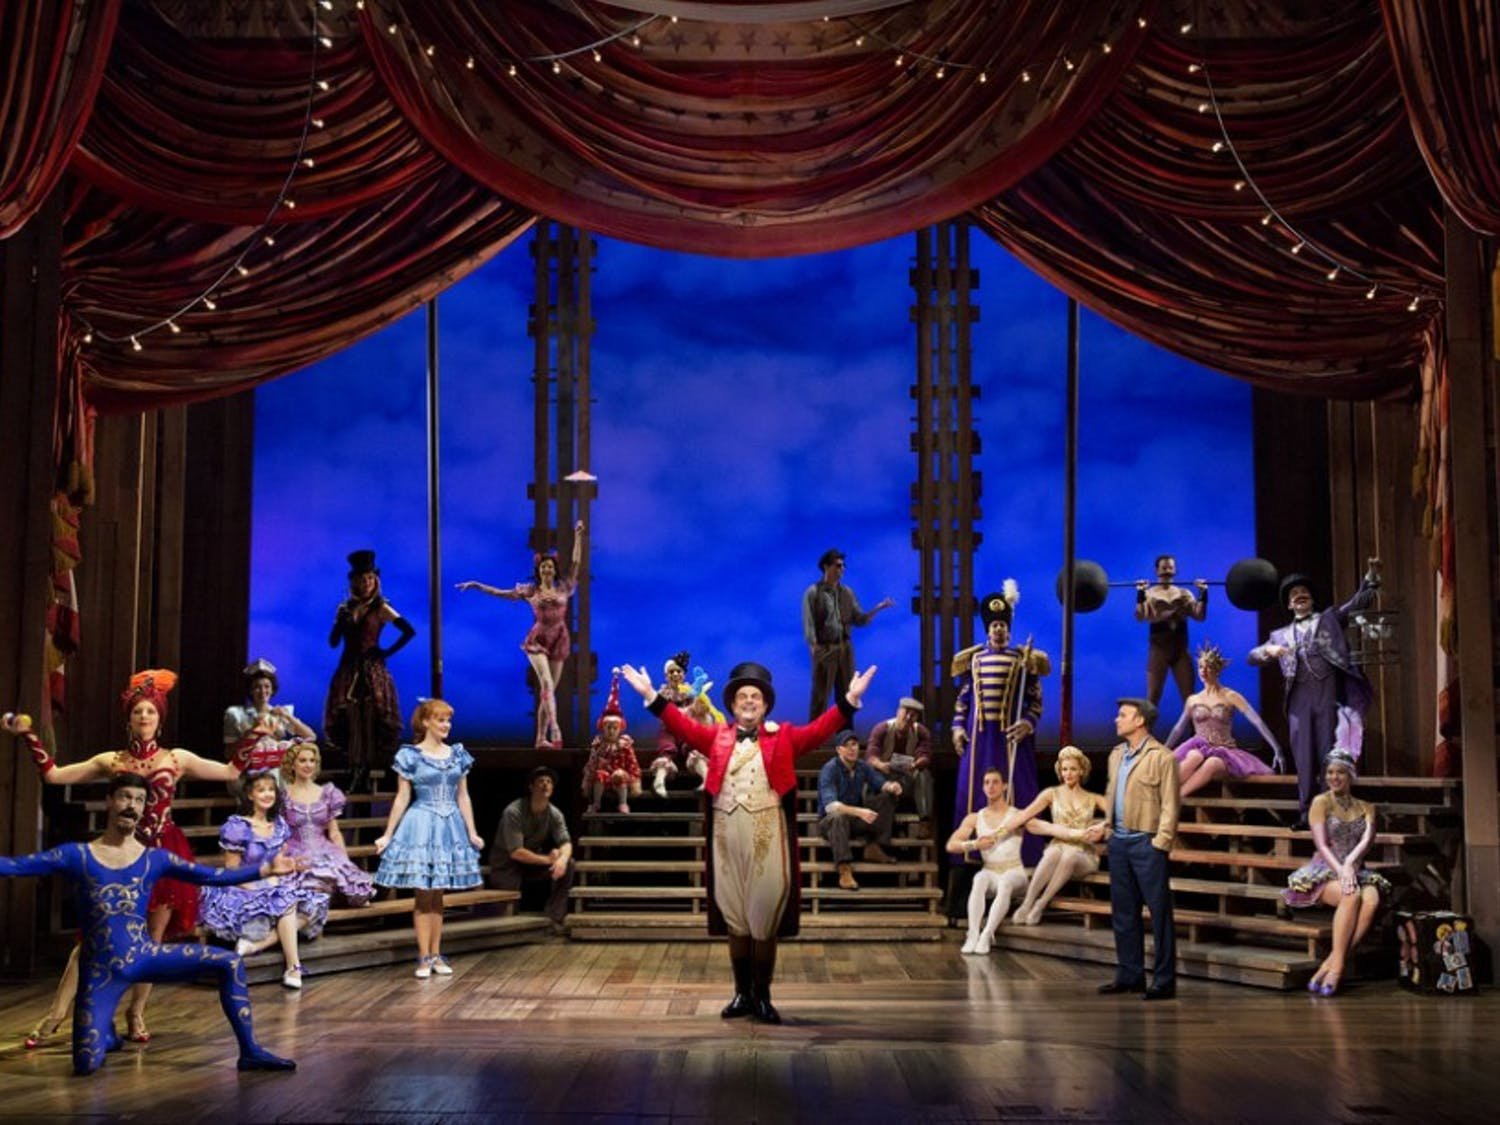 """Daniel Wallace's novel """"Big Fish"""" has been adapted as a Broadway play. Courtesy of Daniel Wallace"""